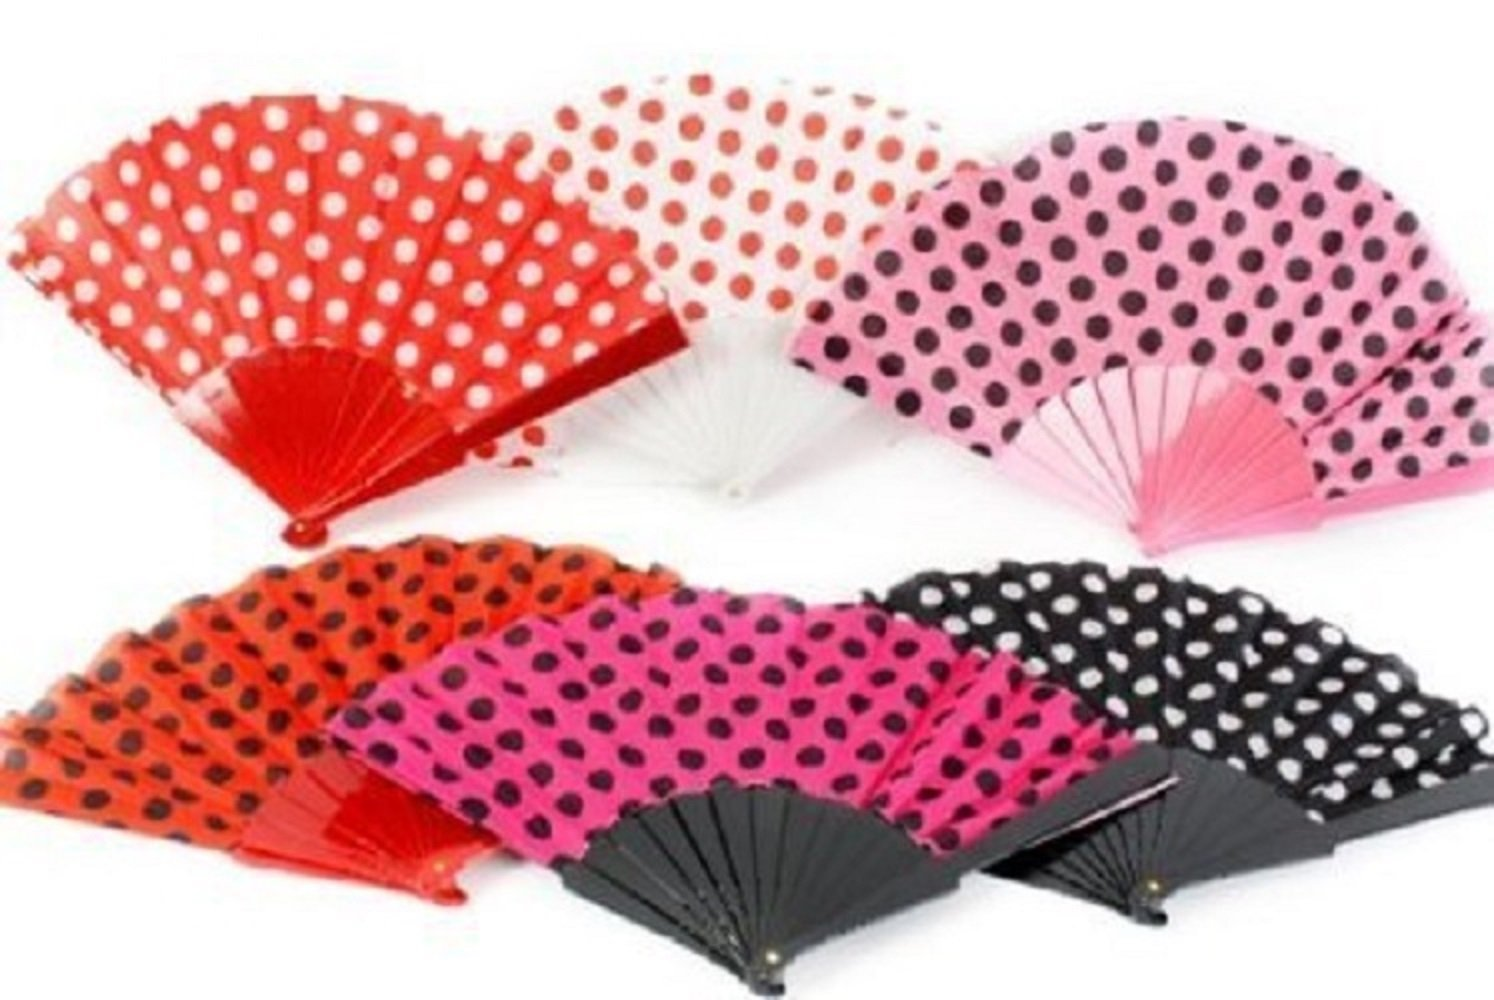 Polka Dot Design Plastic Fabric Chinese Folding Hand Fan / Handheld fan Compact and Fits in most hand bag, ideal for travel Concept4u